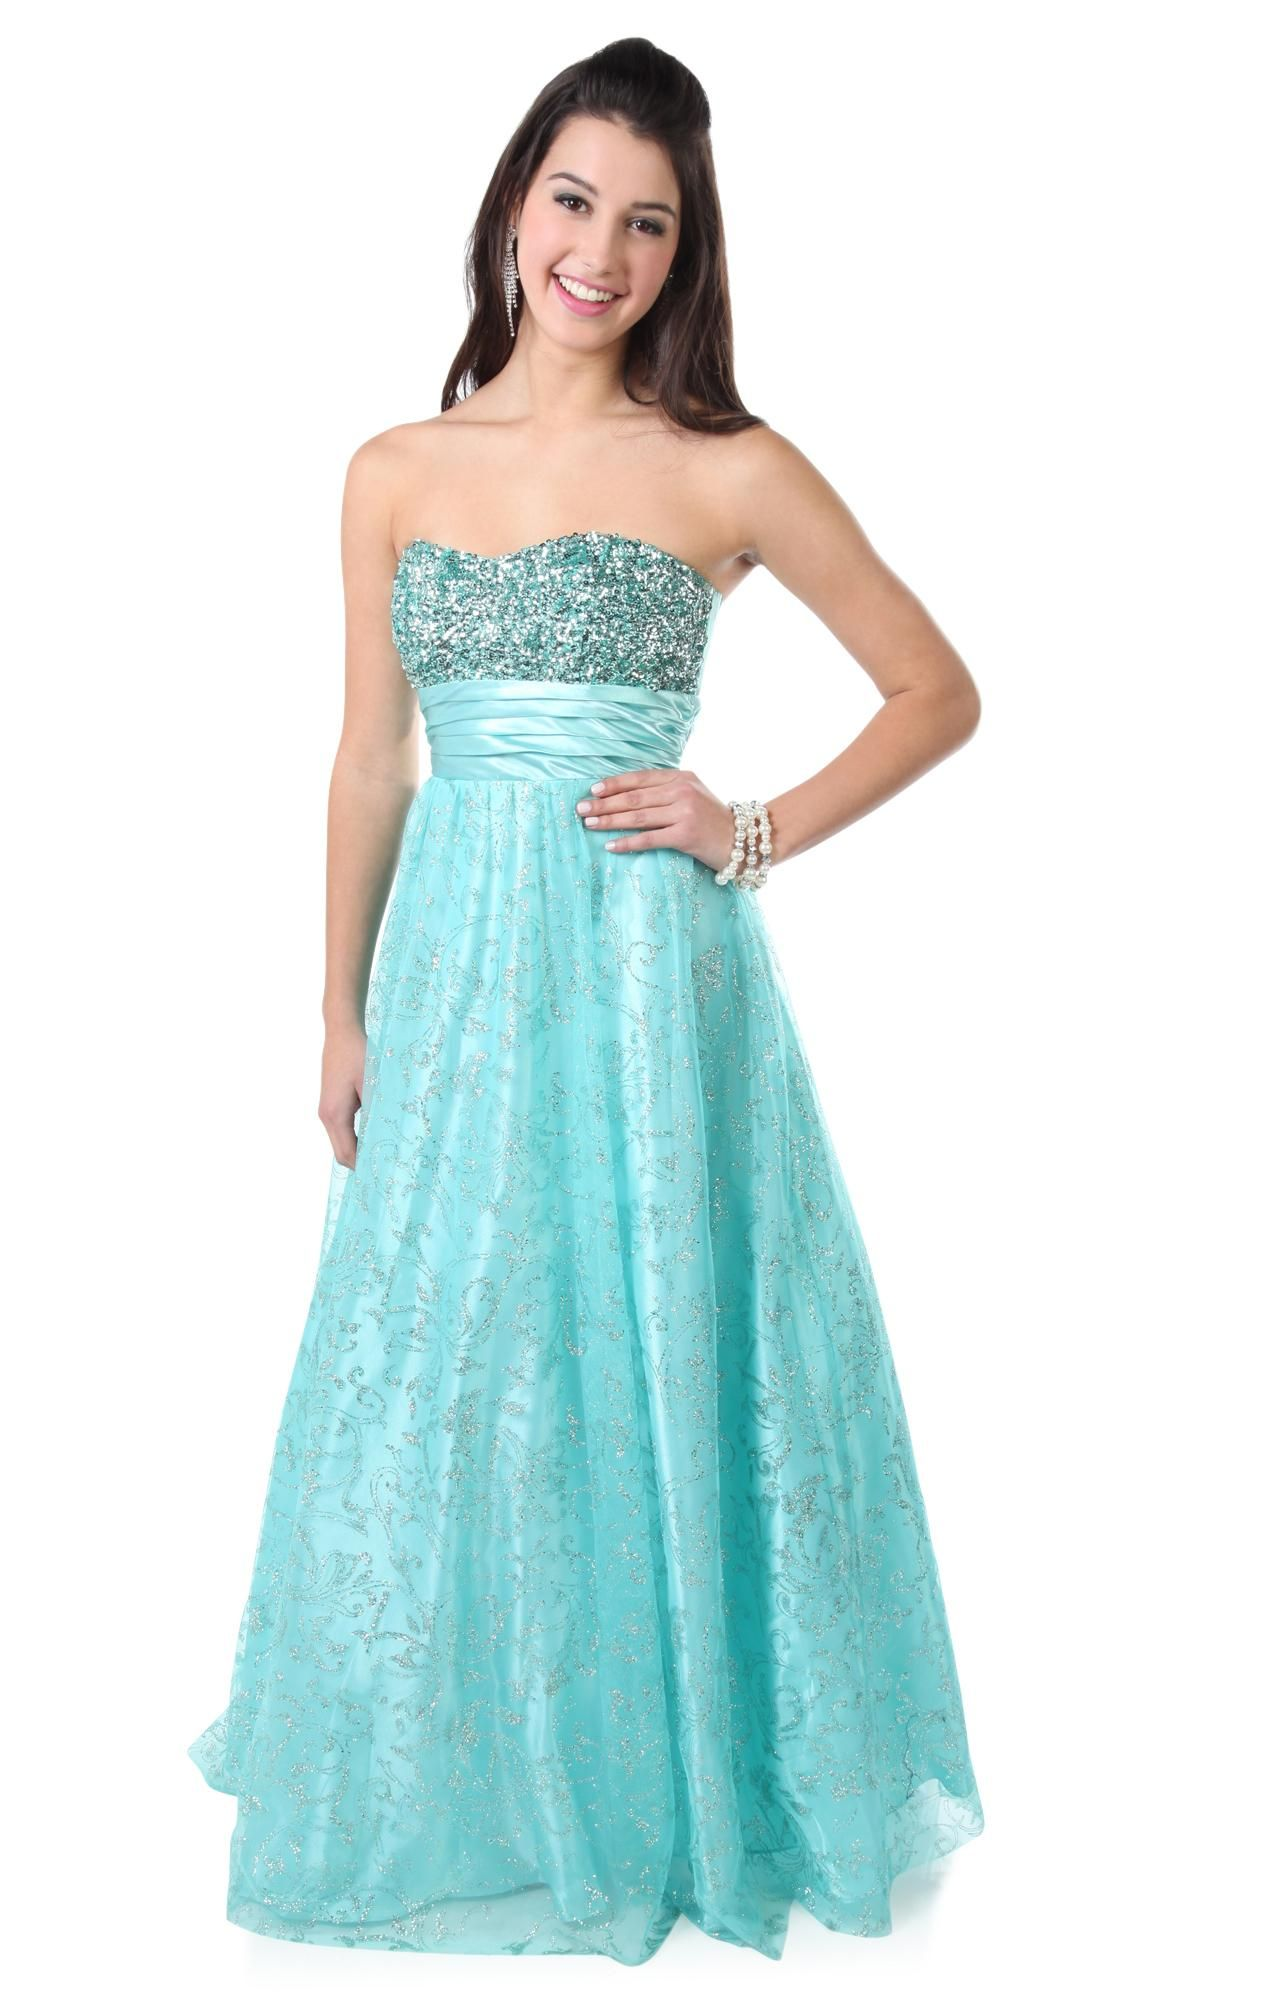 Deb Shops fit and flare #glitter mesh #prom #dress | Prom <3 ...